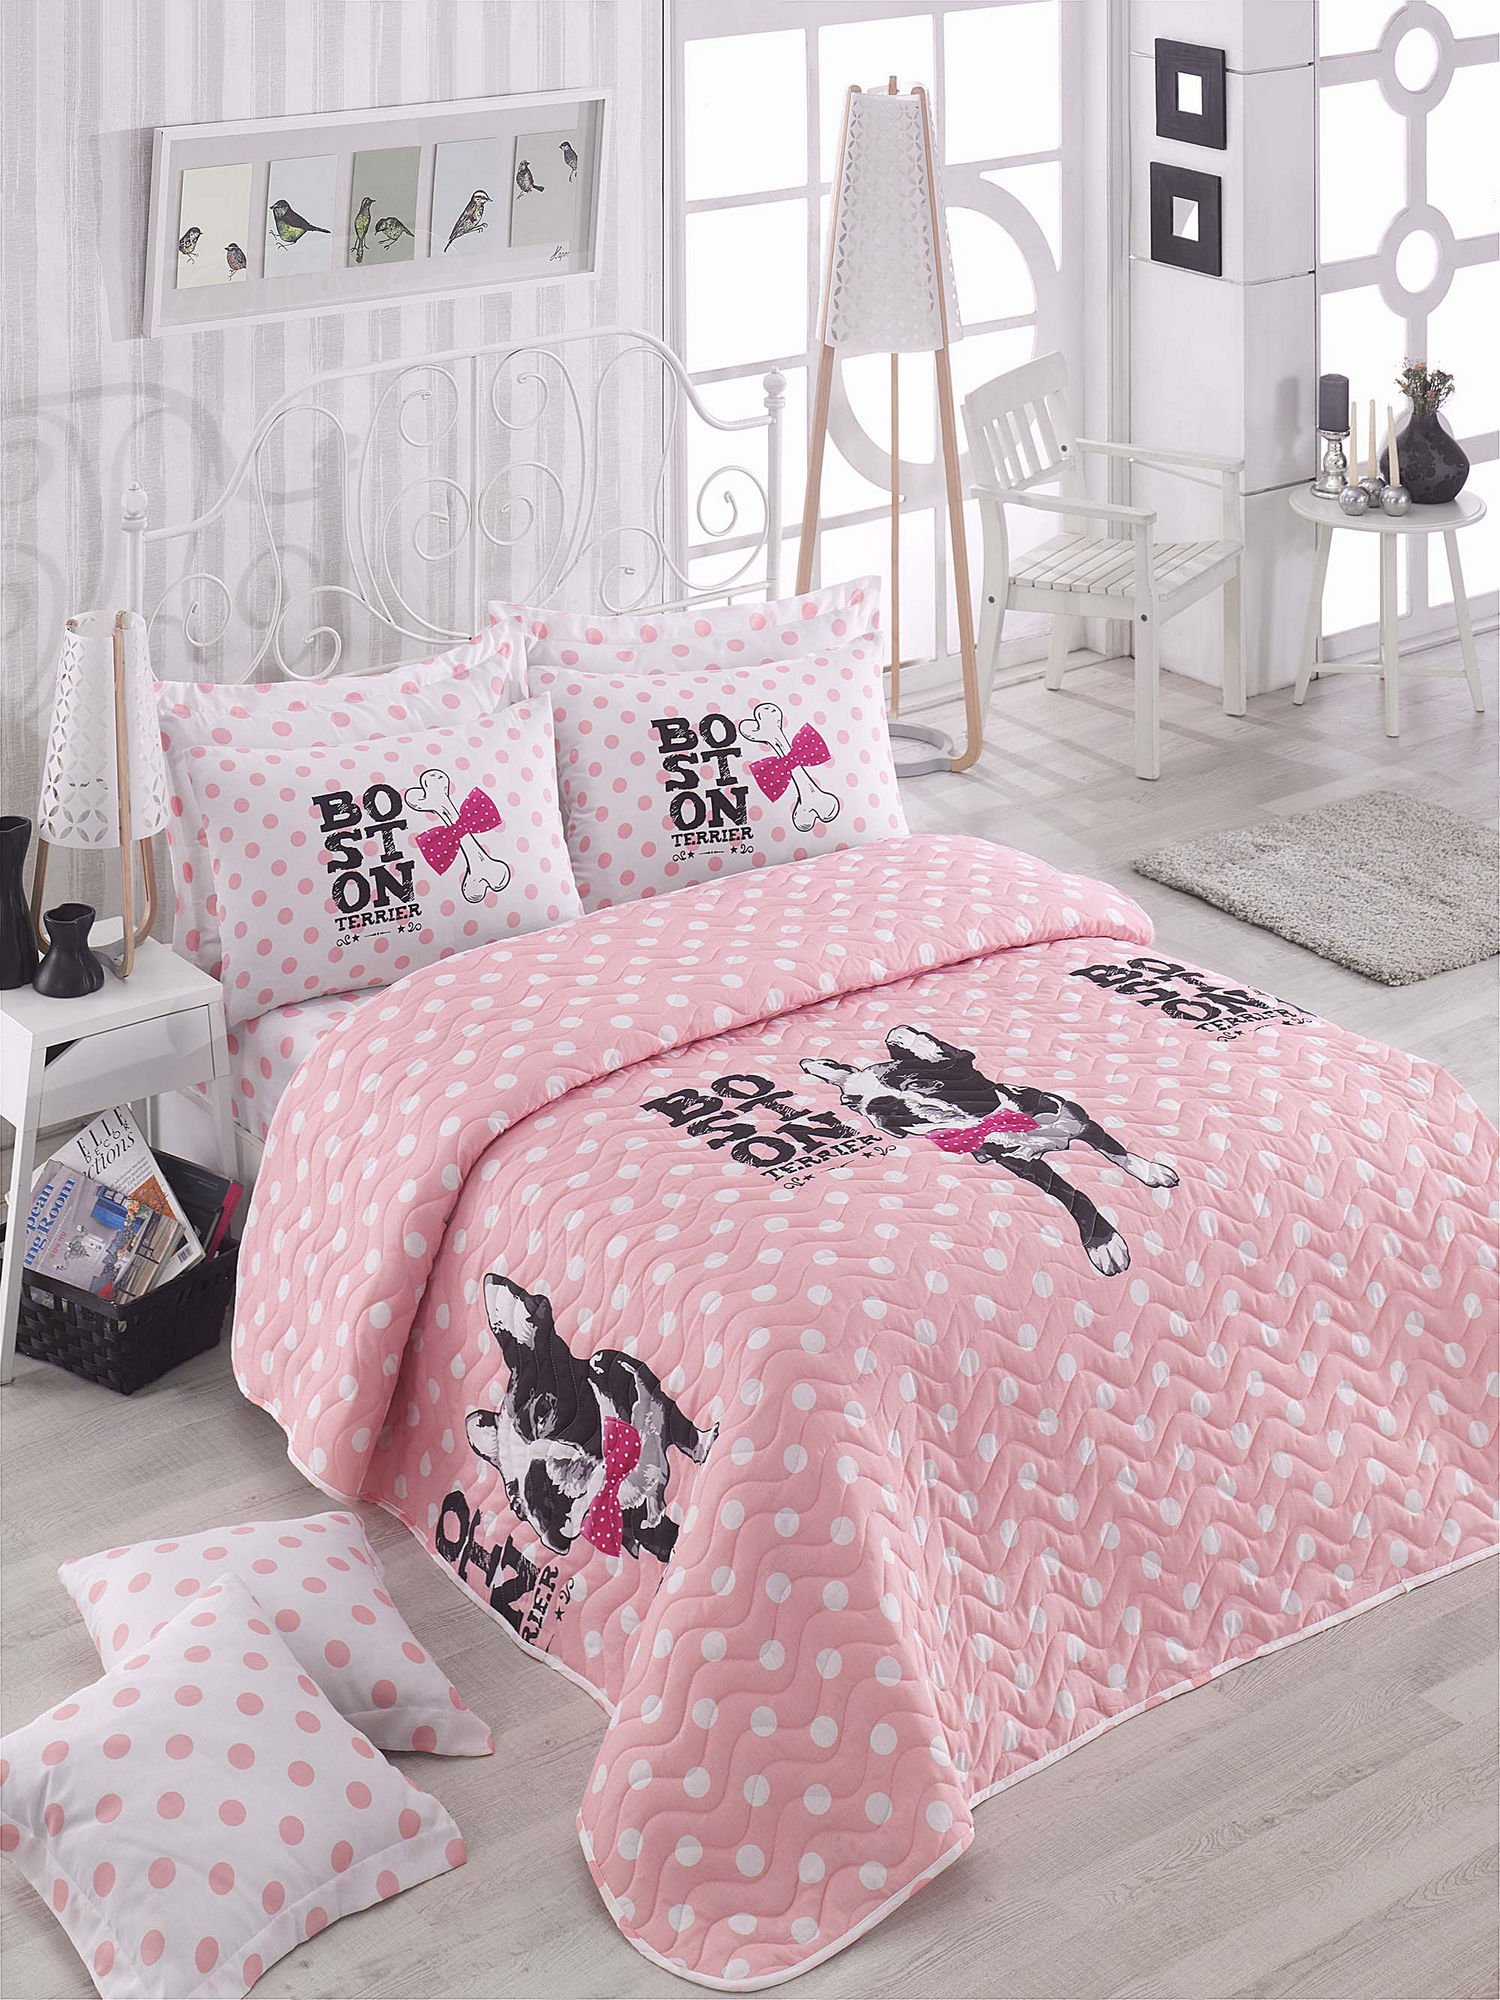 3 Pcs Soft Colored Full and Double Bed Size Bedroom Bedding 65% Cotton Double Quilted Bedspread Set 100% Fiber Filling Padded Soft Relaxed Comfortable Pattern Dog Animal Mottled Bedspread Set